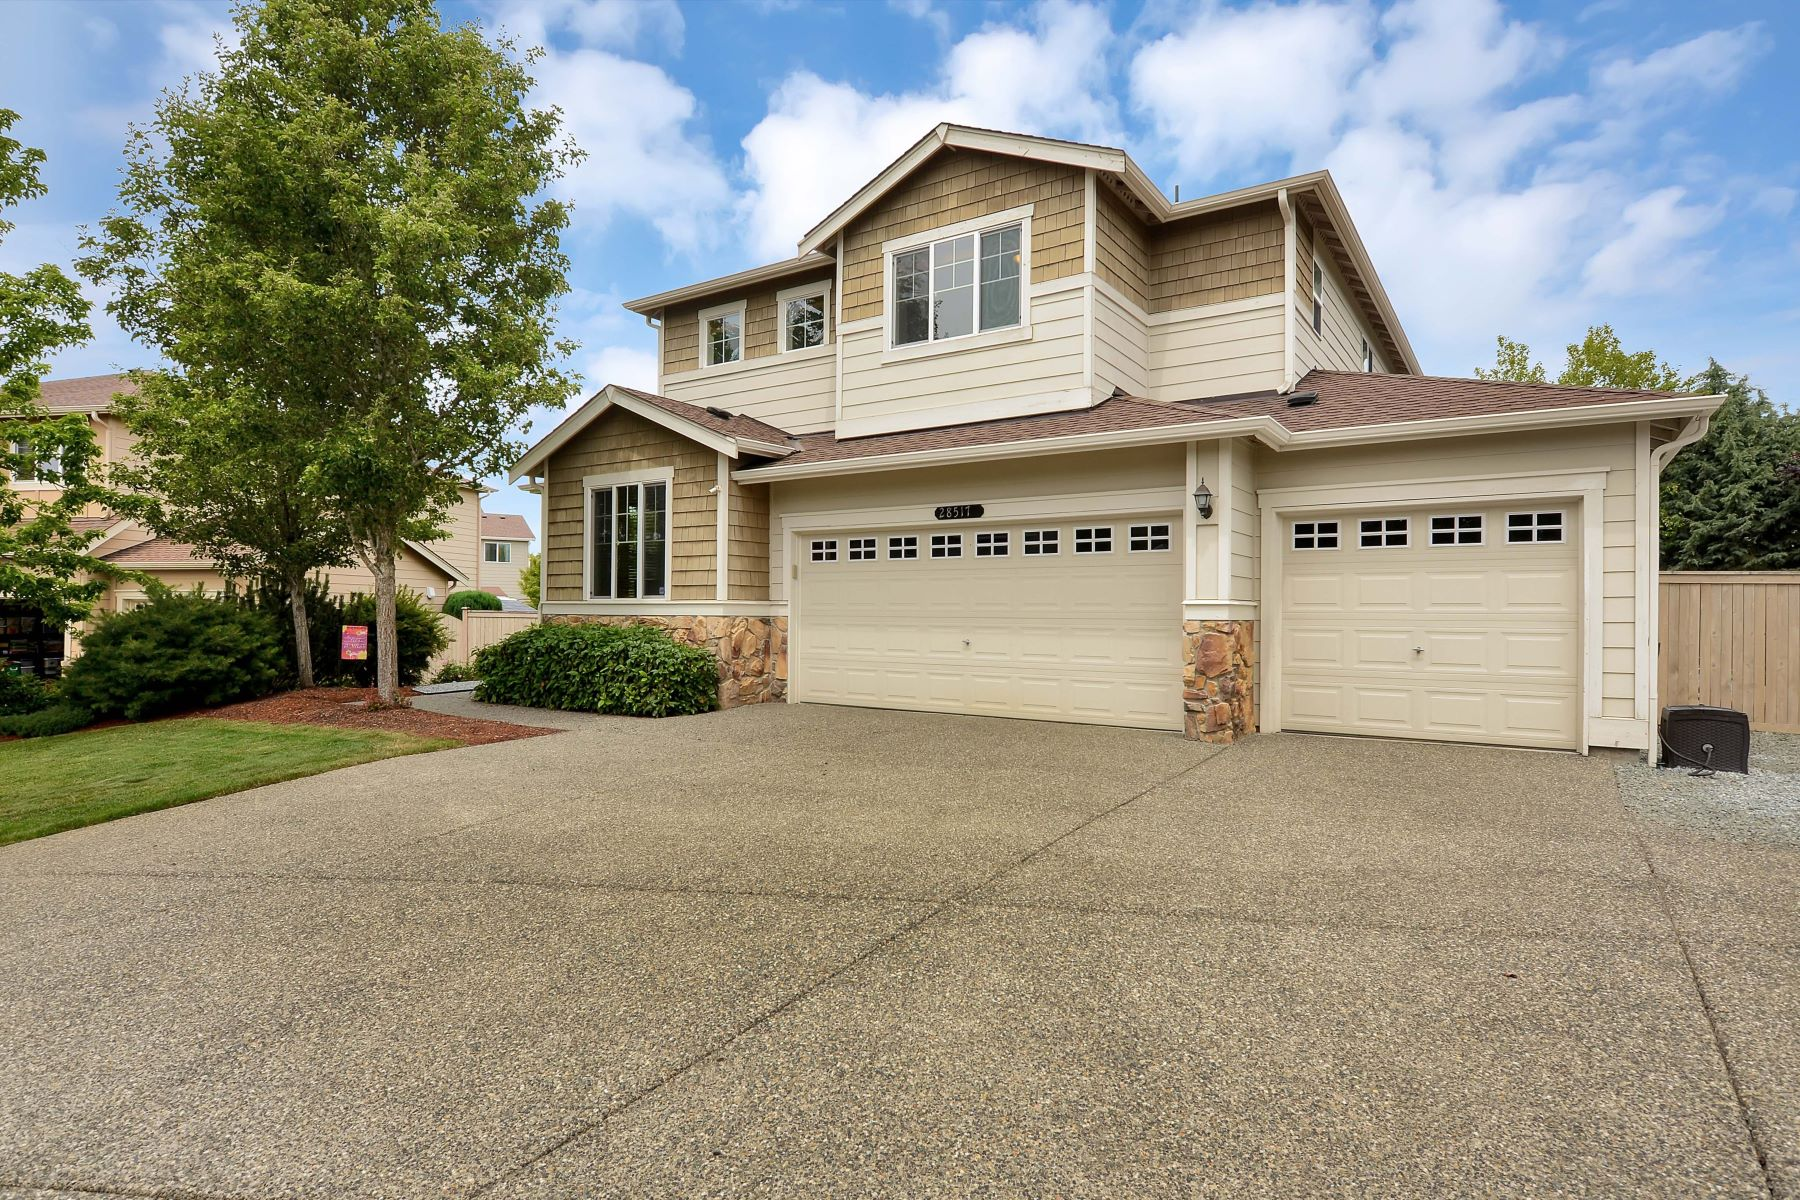 Single Family Homes for Sale at Turnkey Kylie Park 5 Bedroom 28517 Kylie Dr Stanwood, Washington 98292 United States